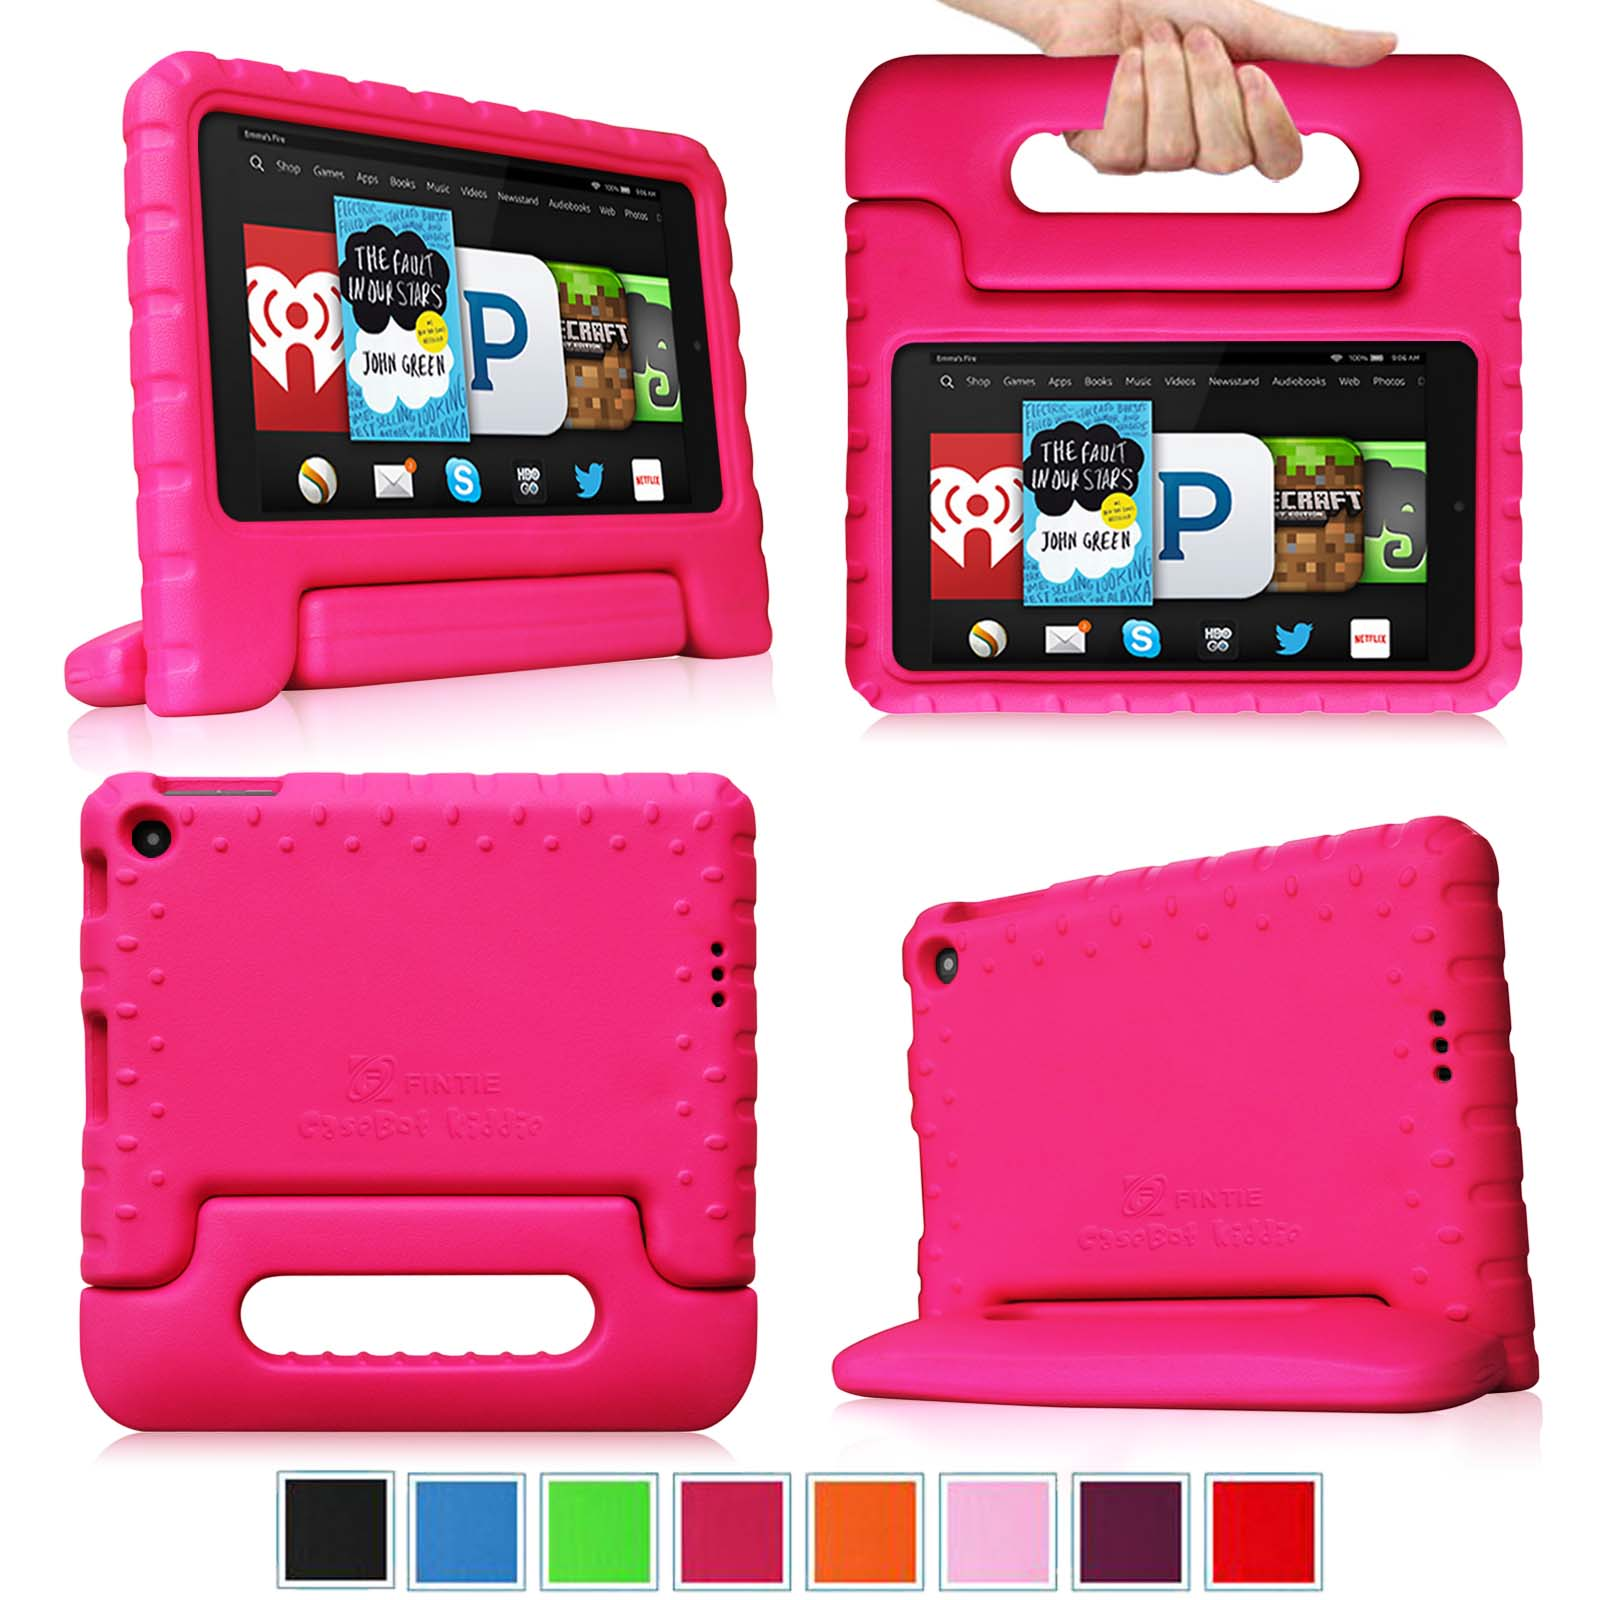 Fintie Light Weight Shock Proof Handle Case for Kids Specially made for Kindle Fire HD 6 2014 Oct Release, Magenta